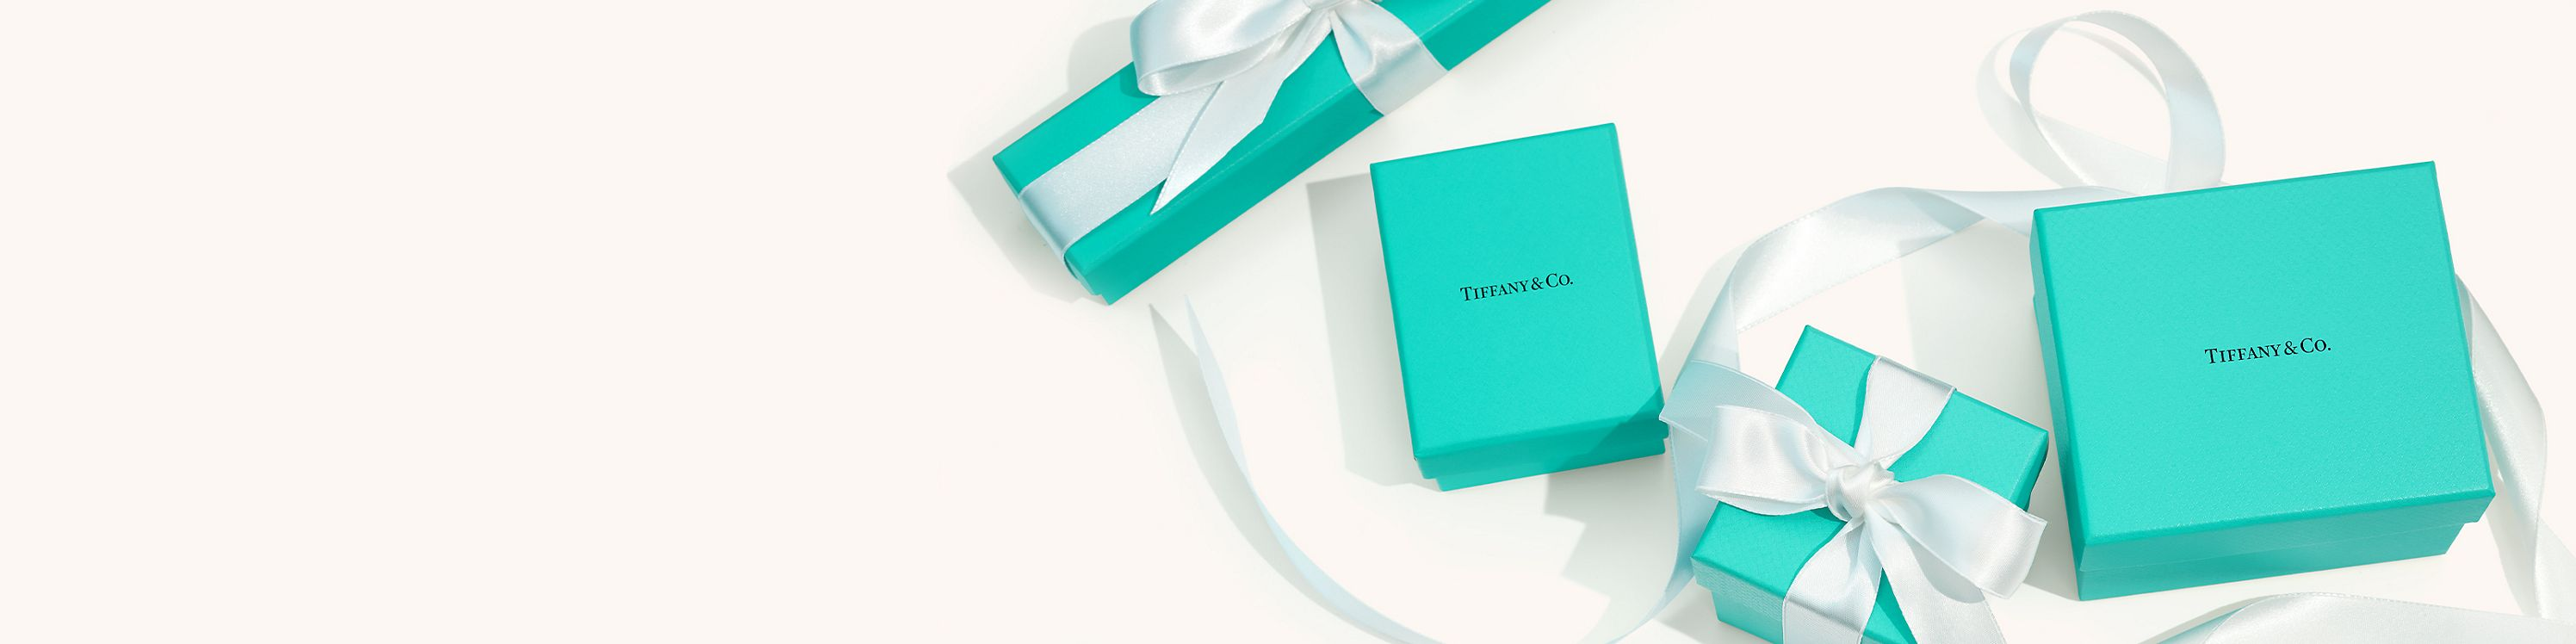 Regali Tiffany & Co. fino a 500 €